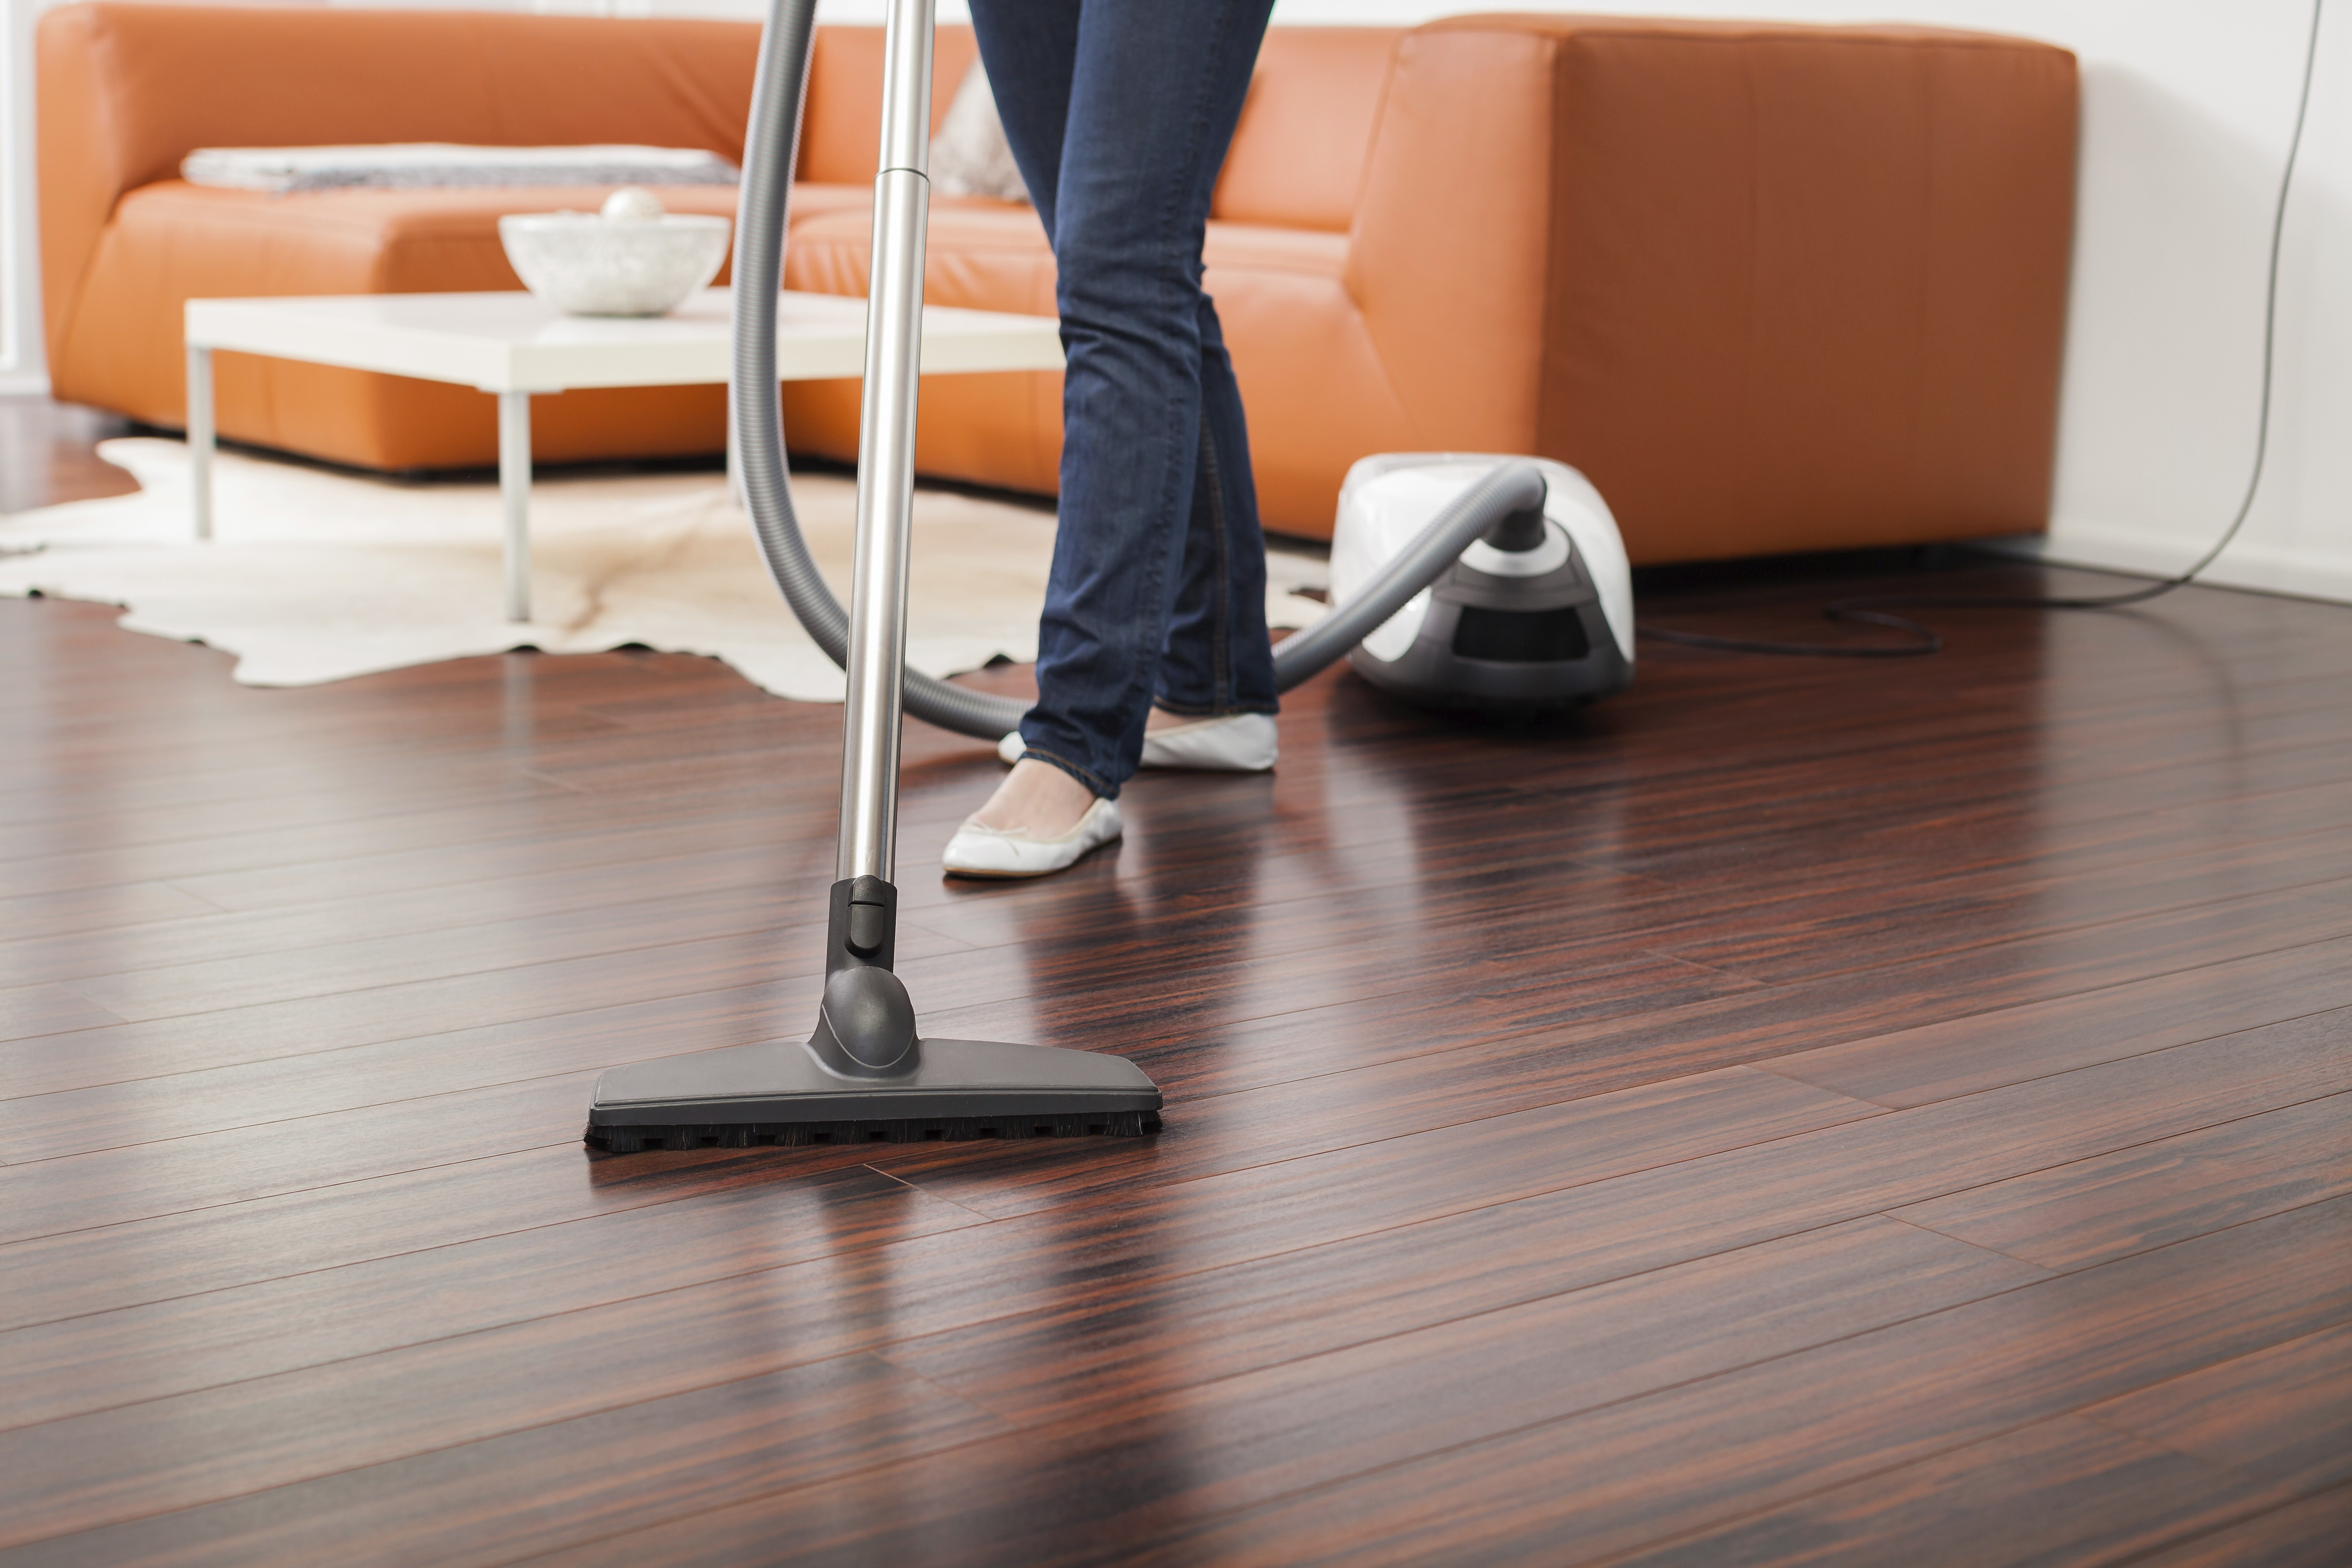 deep clean engineered hardwood floors of cleaning hardwood floors with vinegar how to clean your hardwood pertaining to cleaning hardwood floors with vinegar how to clean your hardwood floors with vinegar inspirational how to